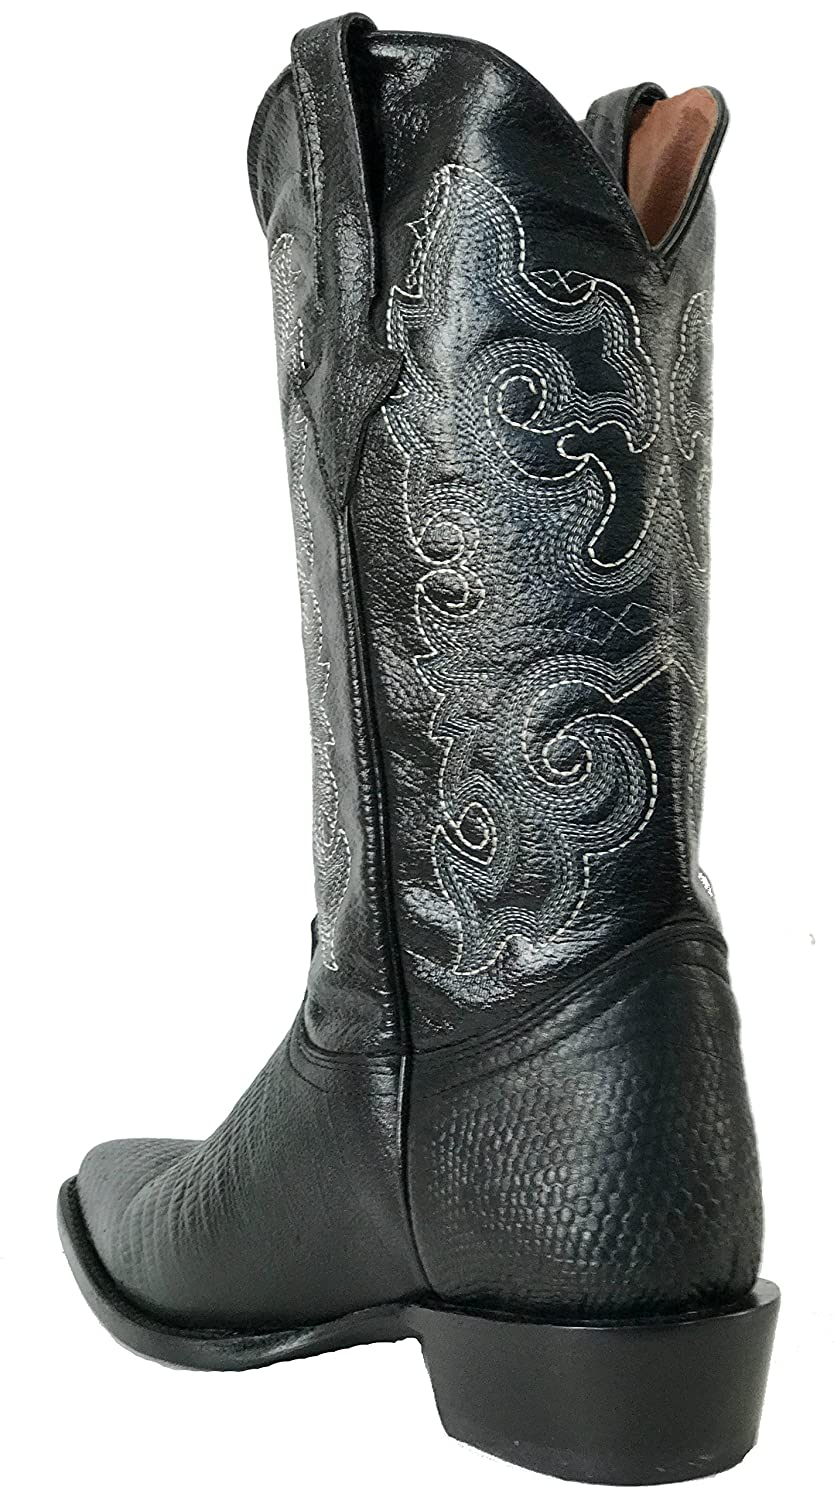 Hand Made Mens New Leather Exotic Lizard Design Cowboy Western Boots J Toe Black